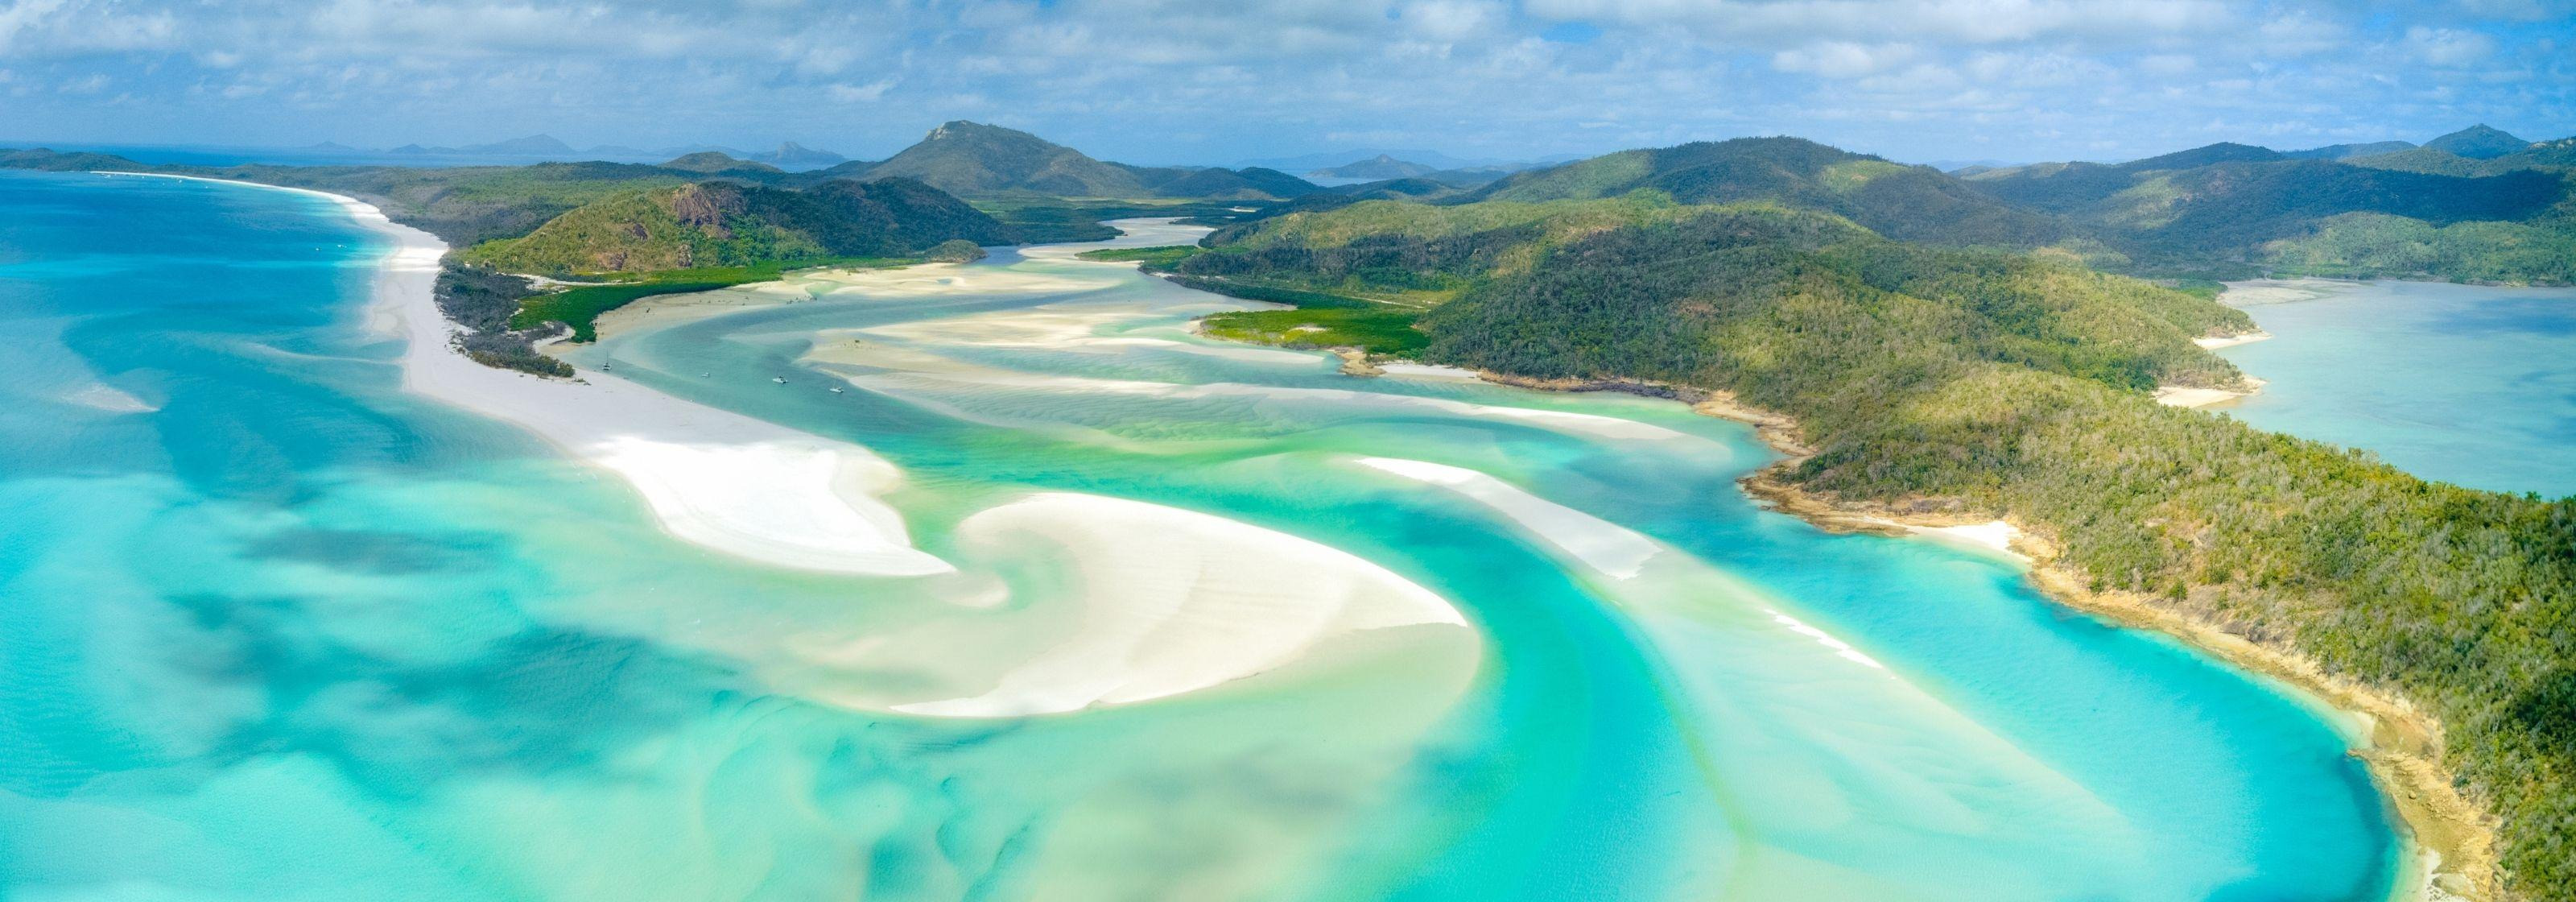 Things to do in the Whitsundays and Hamilton Island